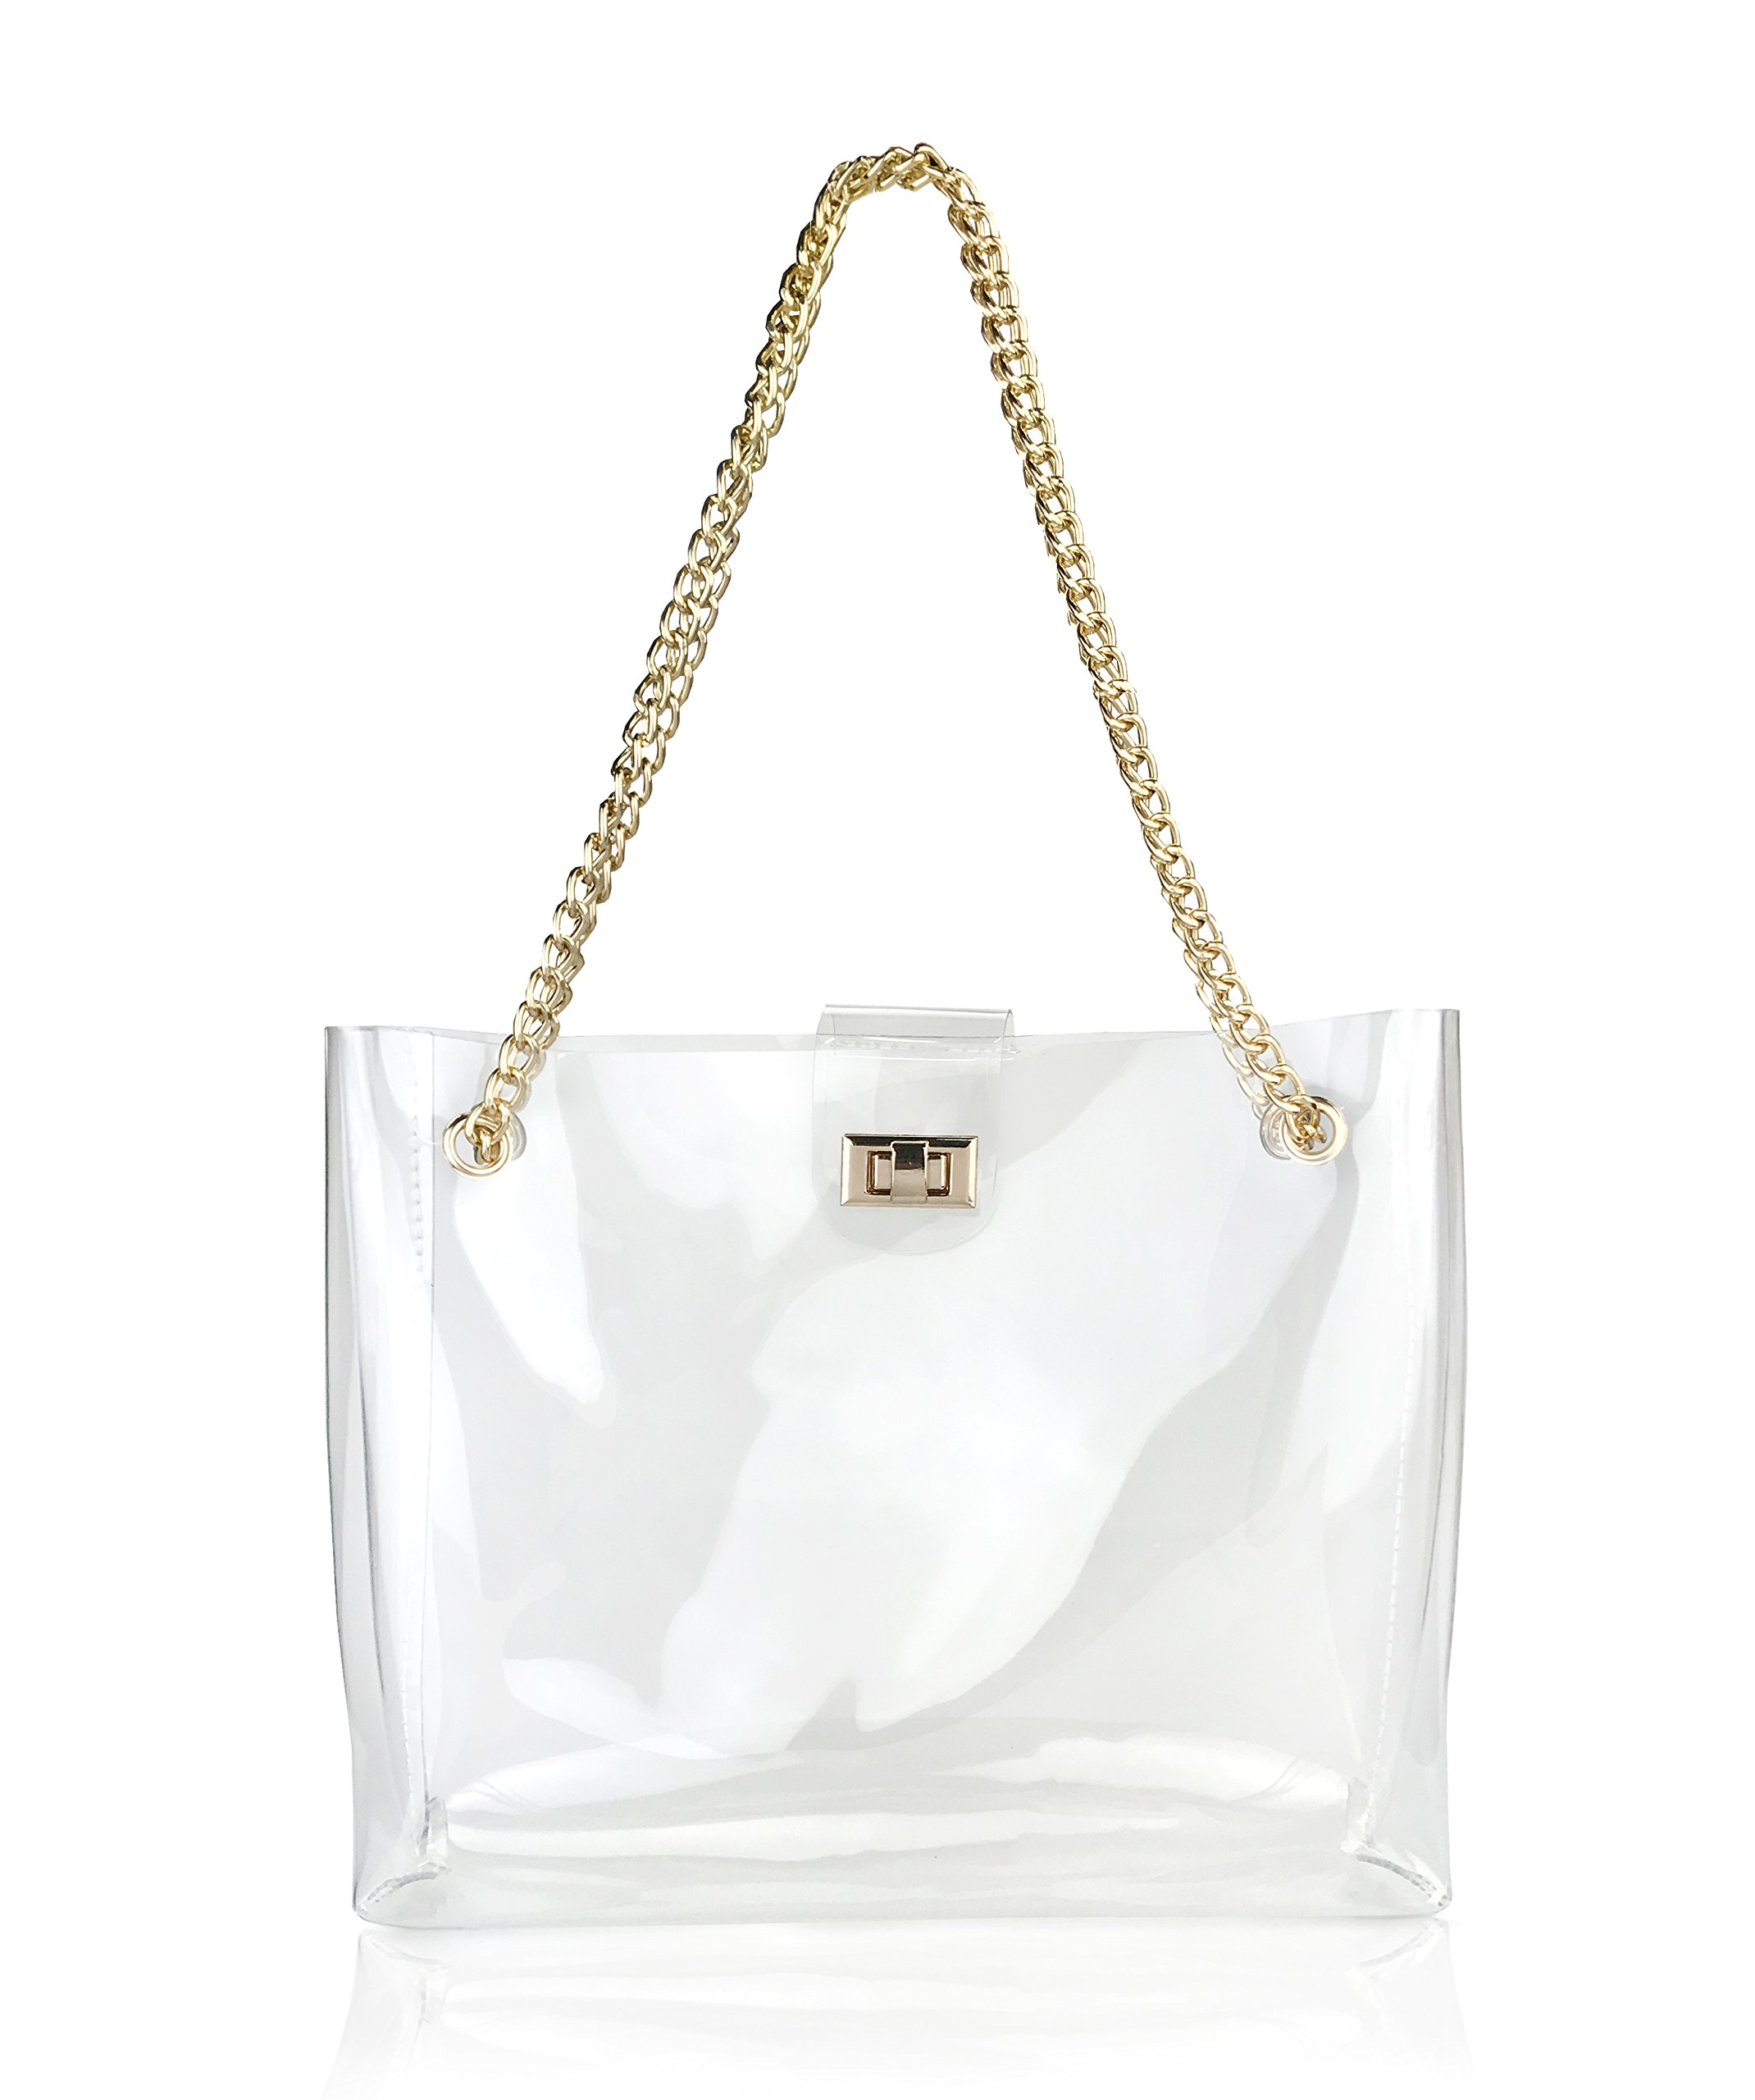 Multifunction Clear Chain Tote with Turn Lock Womens Shoulder Handbag (Clear) by Hoxis (Image #1)